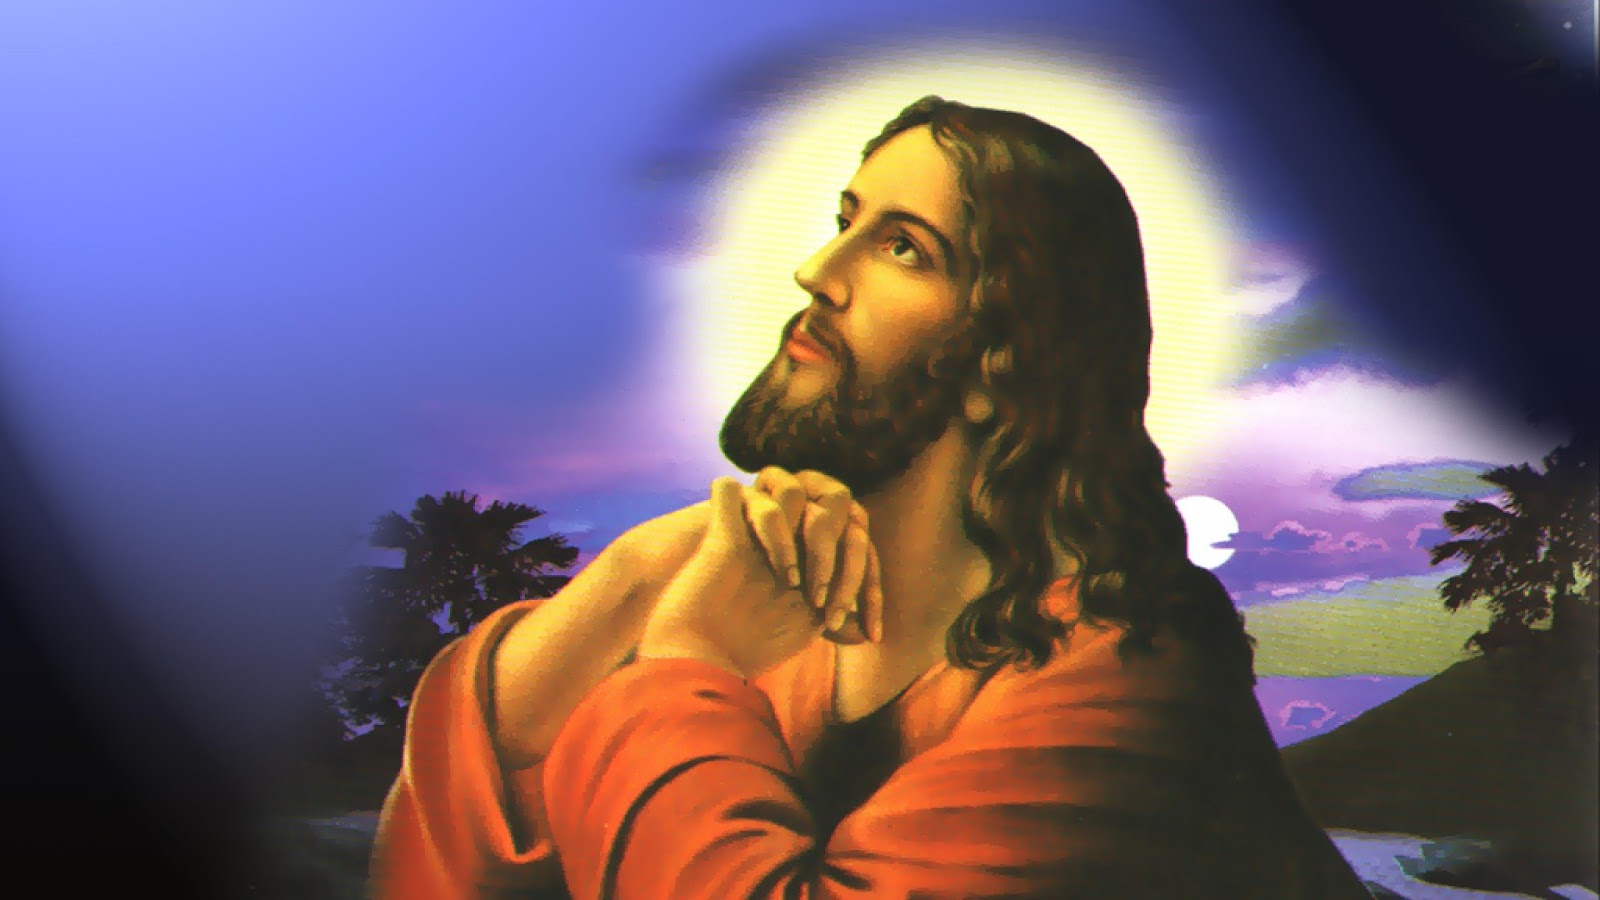 Wallpaper Jesus Christ Free Download